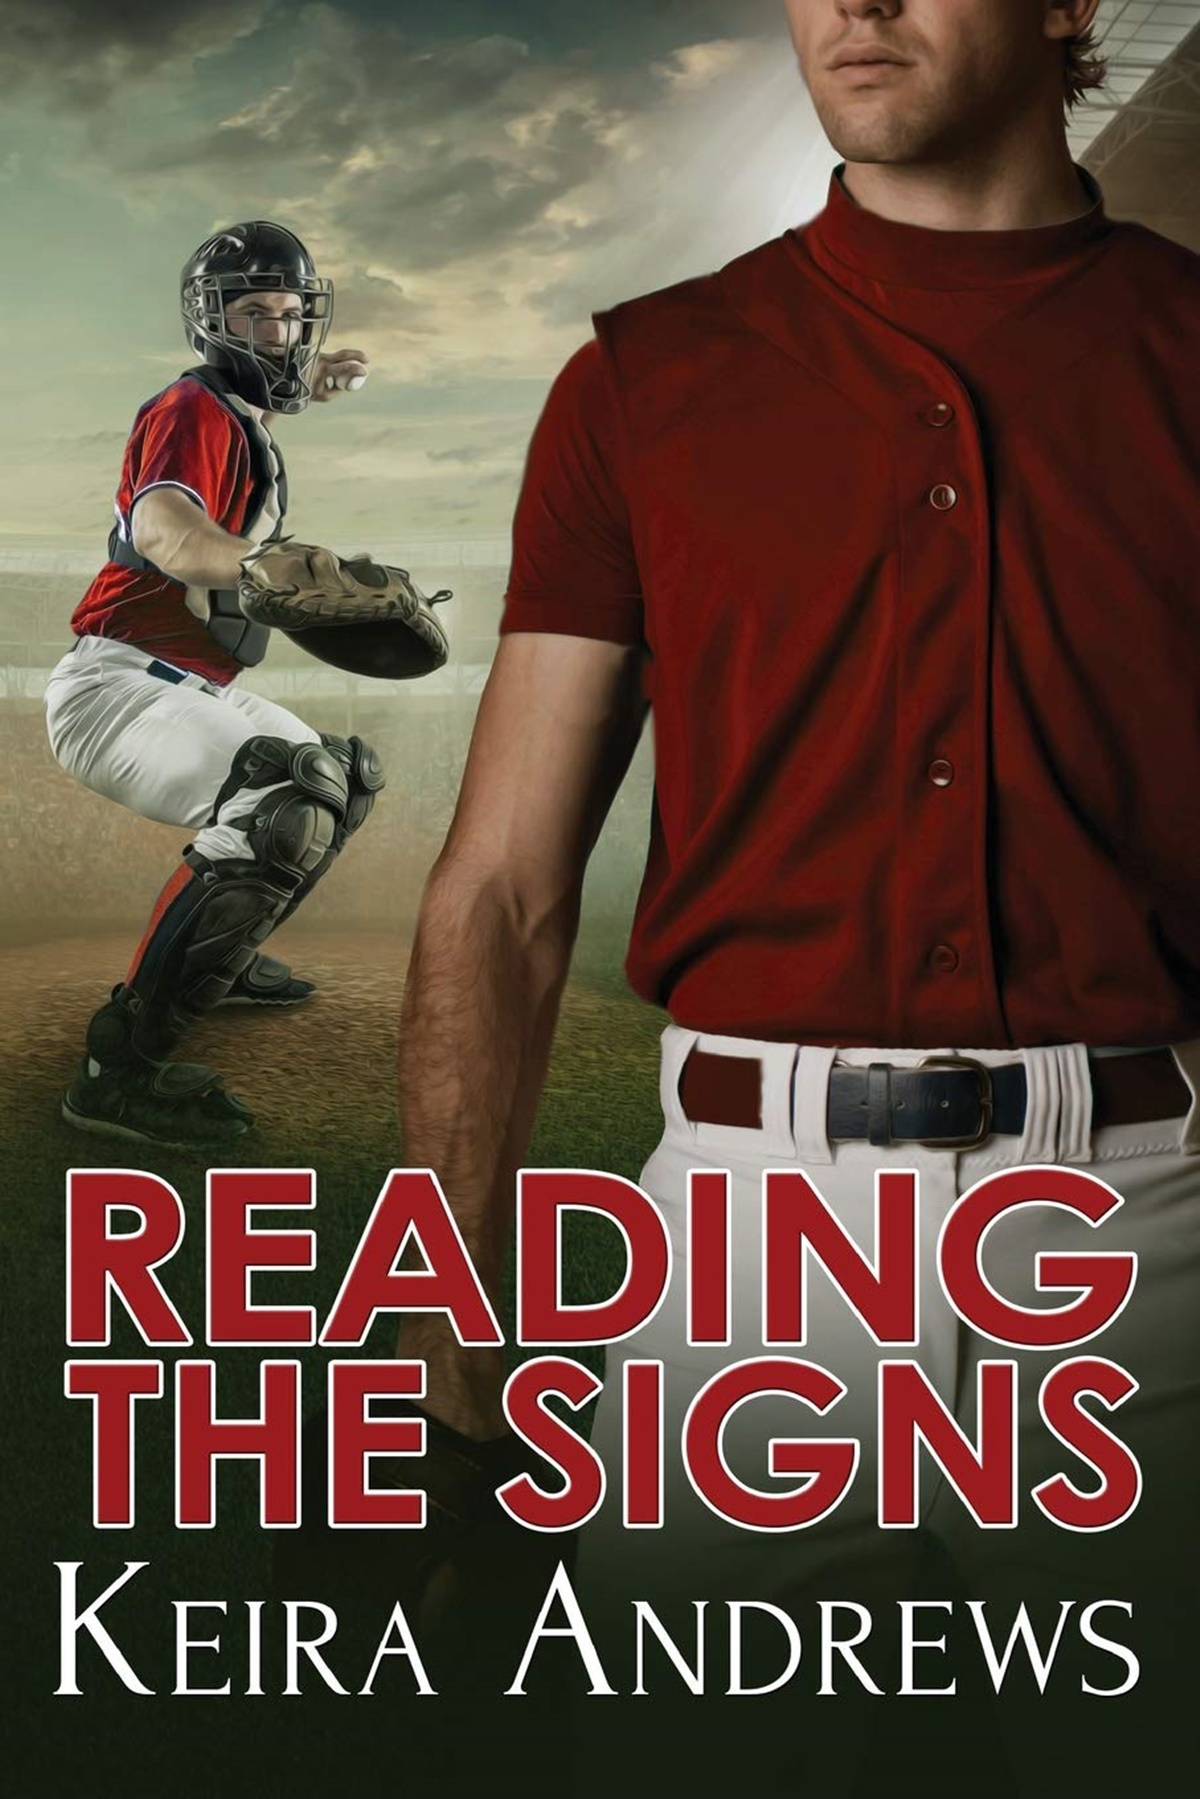 Baseball Romance Novels, cover of Reading the Signs by Keira Andrews, books